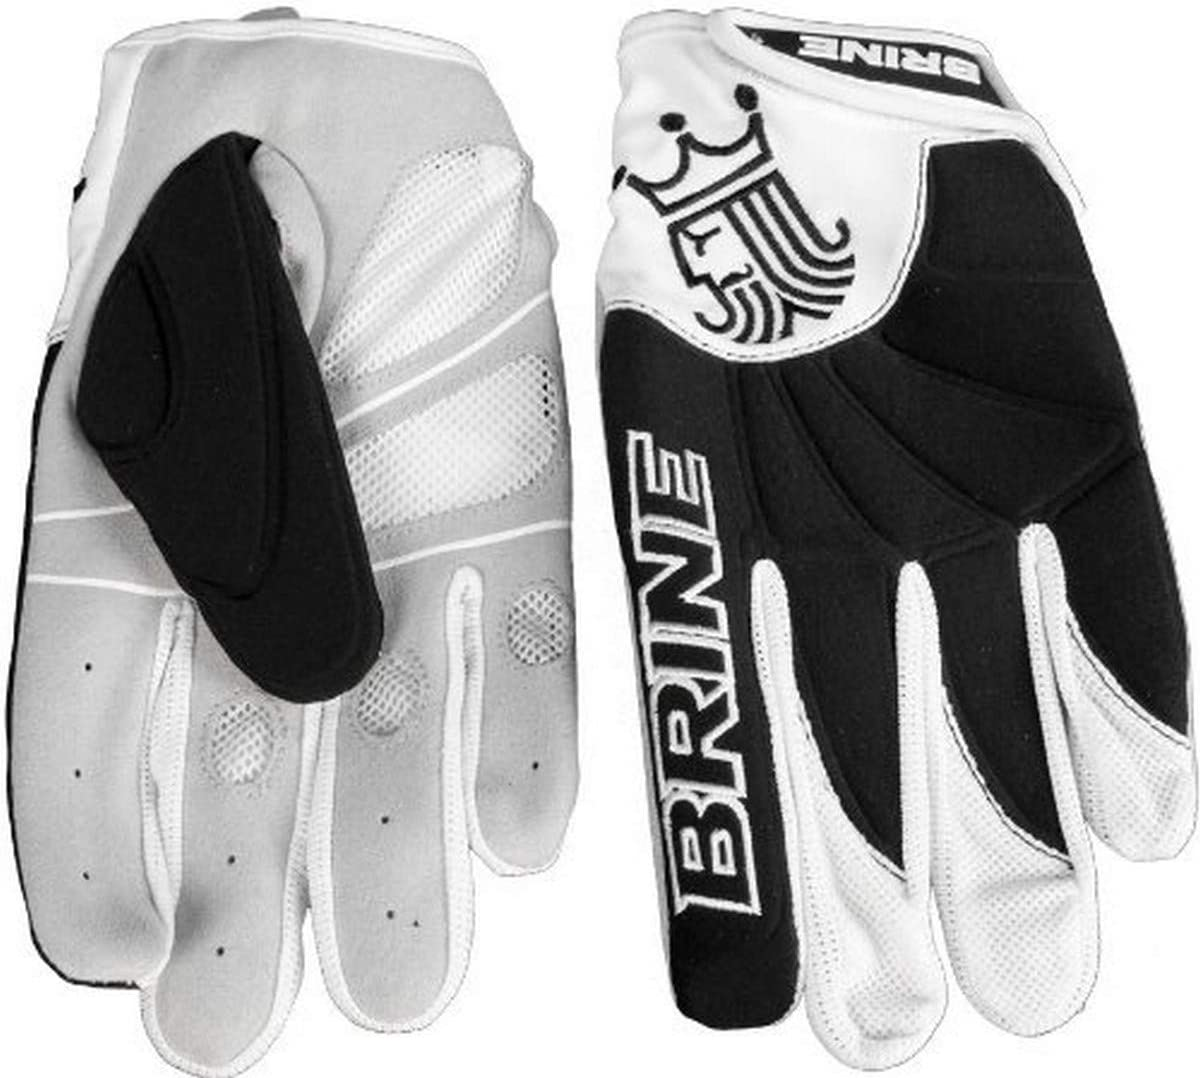 Brine Silhouette Compression Molded Lacrosse Warm Weather Glove (Large, Black) : Lacrosse Player Gloves : Sports & Outdoors